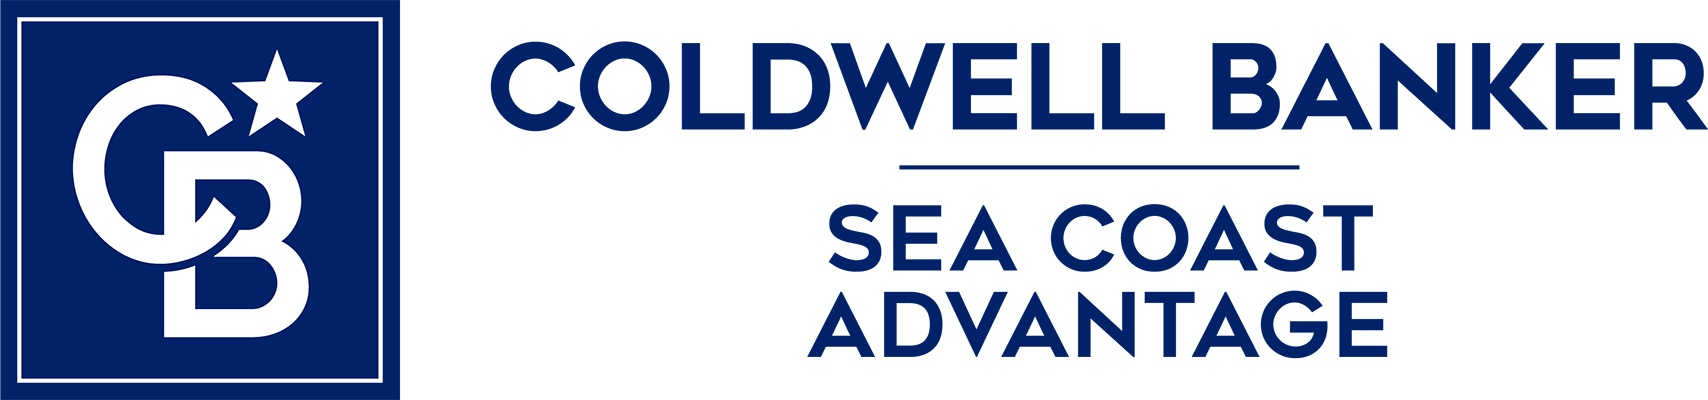 Candice Wells - Coldwell Banker Sea Coast Advantage Realty